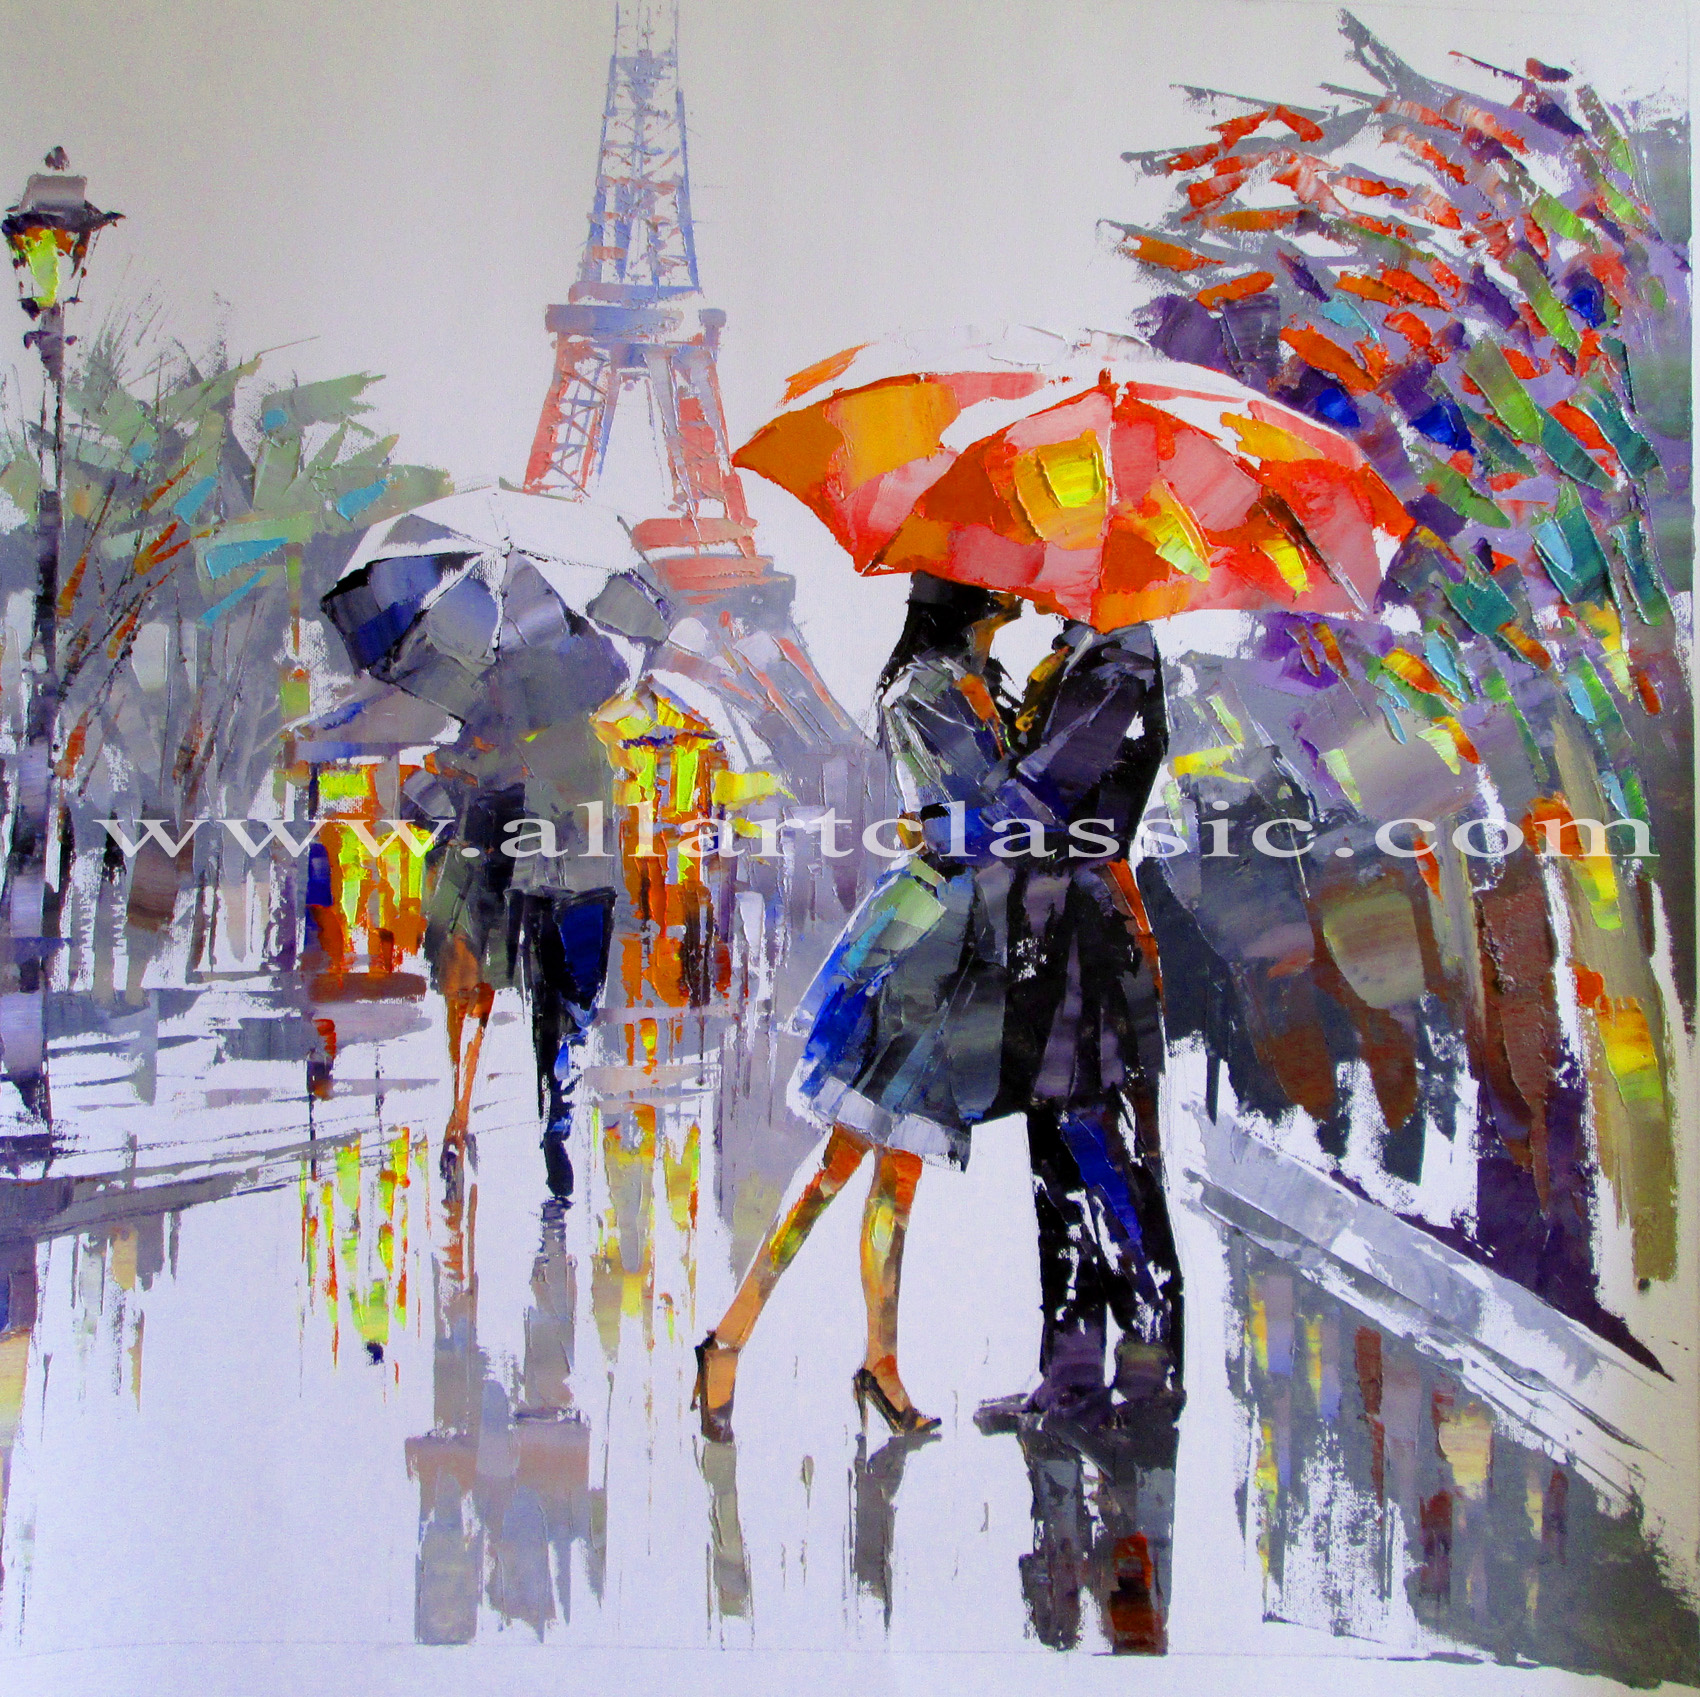 Original Art Painting - Rainy Day in Paris, Modern Art